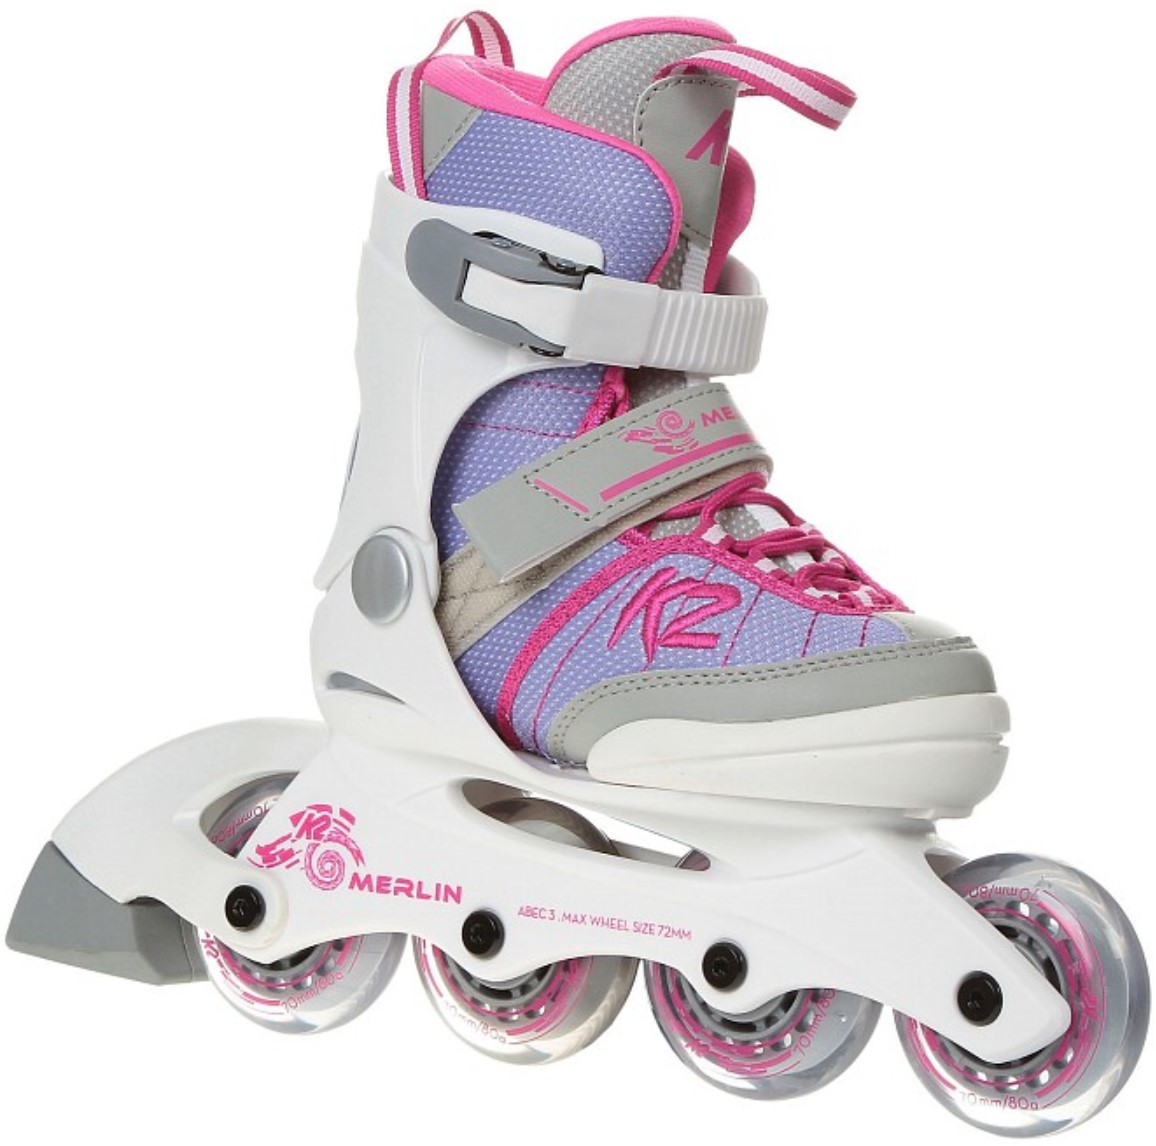 K2 Youth Skate Merlin Girl with pink touch